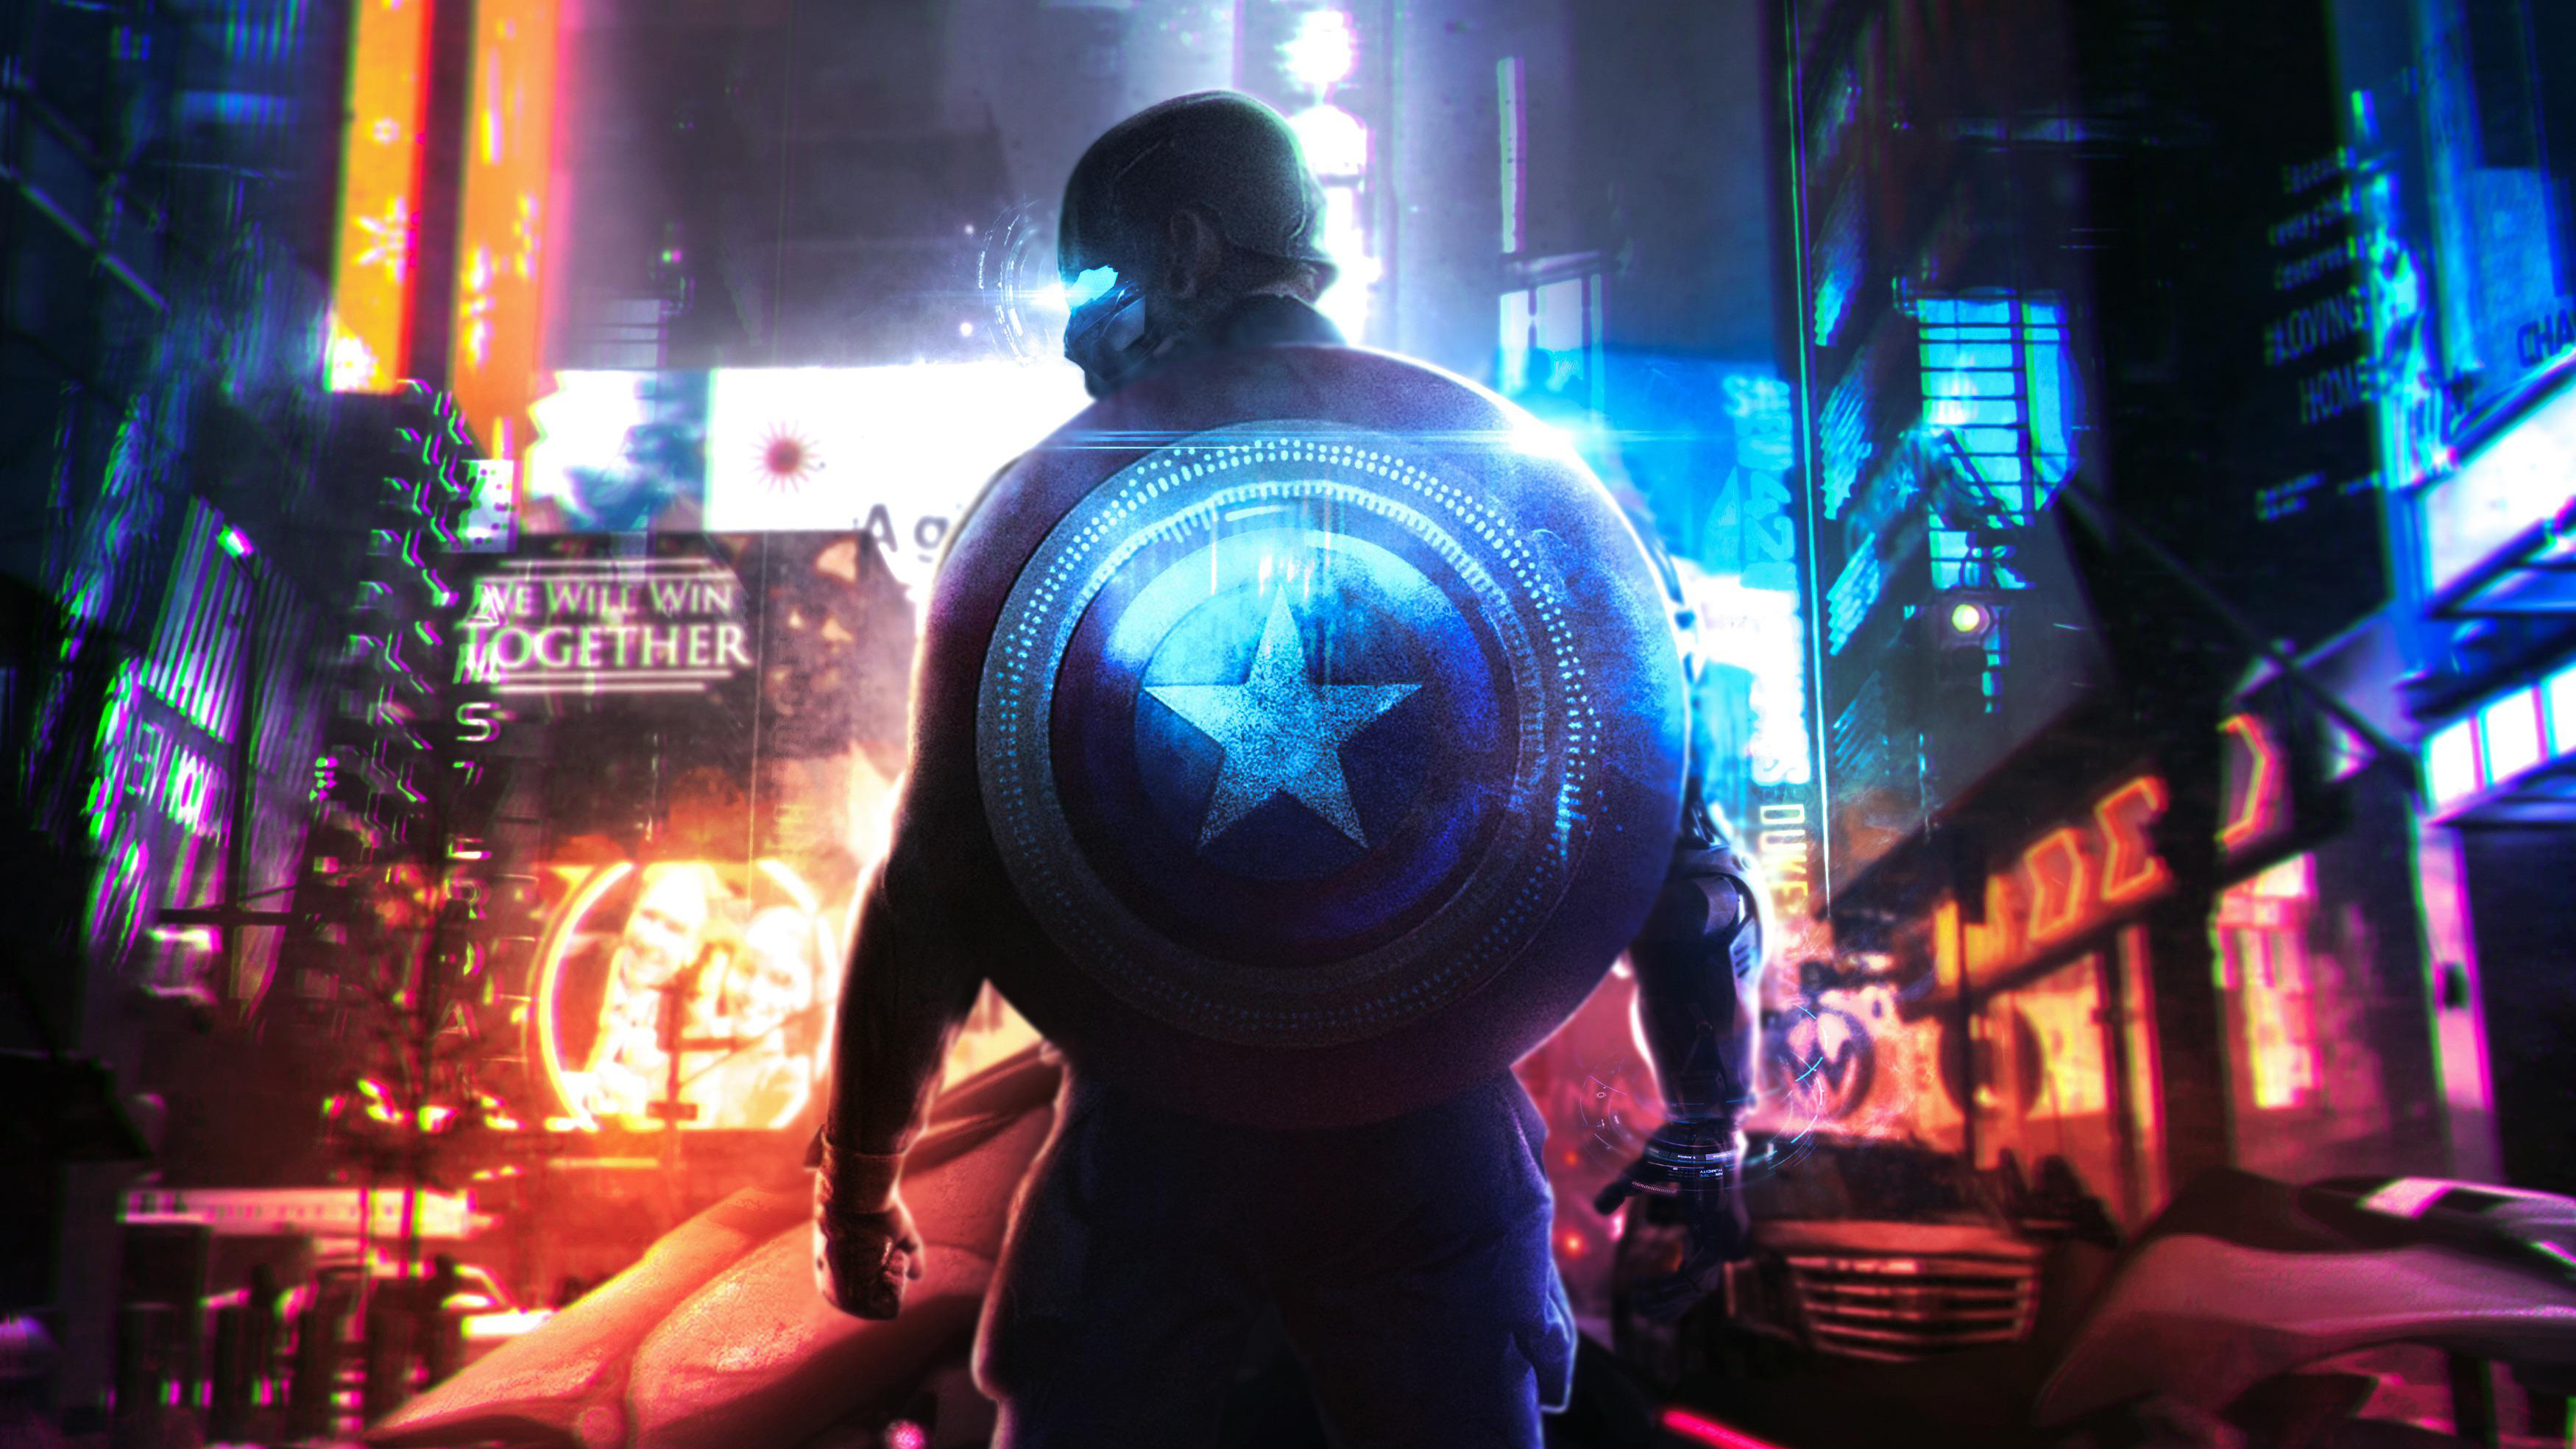 General 3500x1969 digital digital art artwork Steve Rogers Captain America shield Marvel Cinematic Universe Marvel Comics cyber cyberpunk Dark Cyberpunk lights neon neon lights city architecture building urban modern cityscape city lights colorful concept art The Avengers futuristic comics cyan